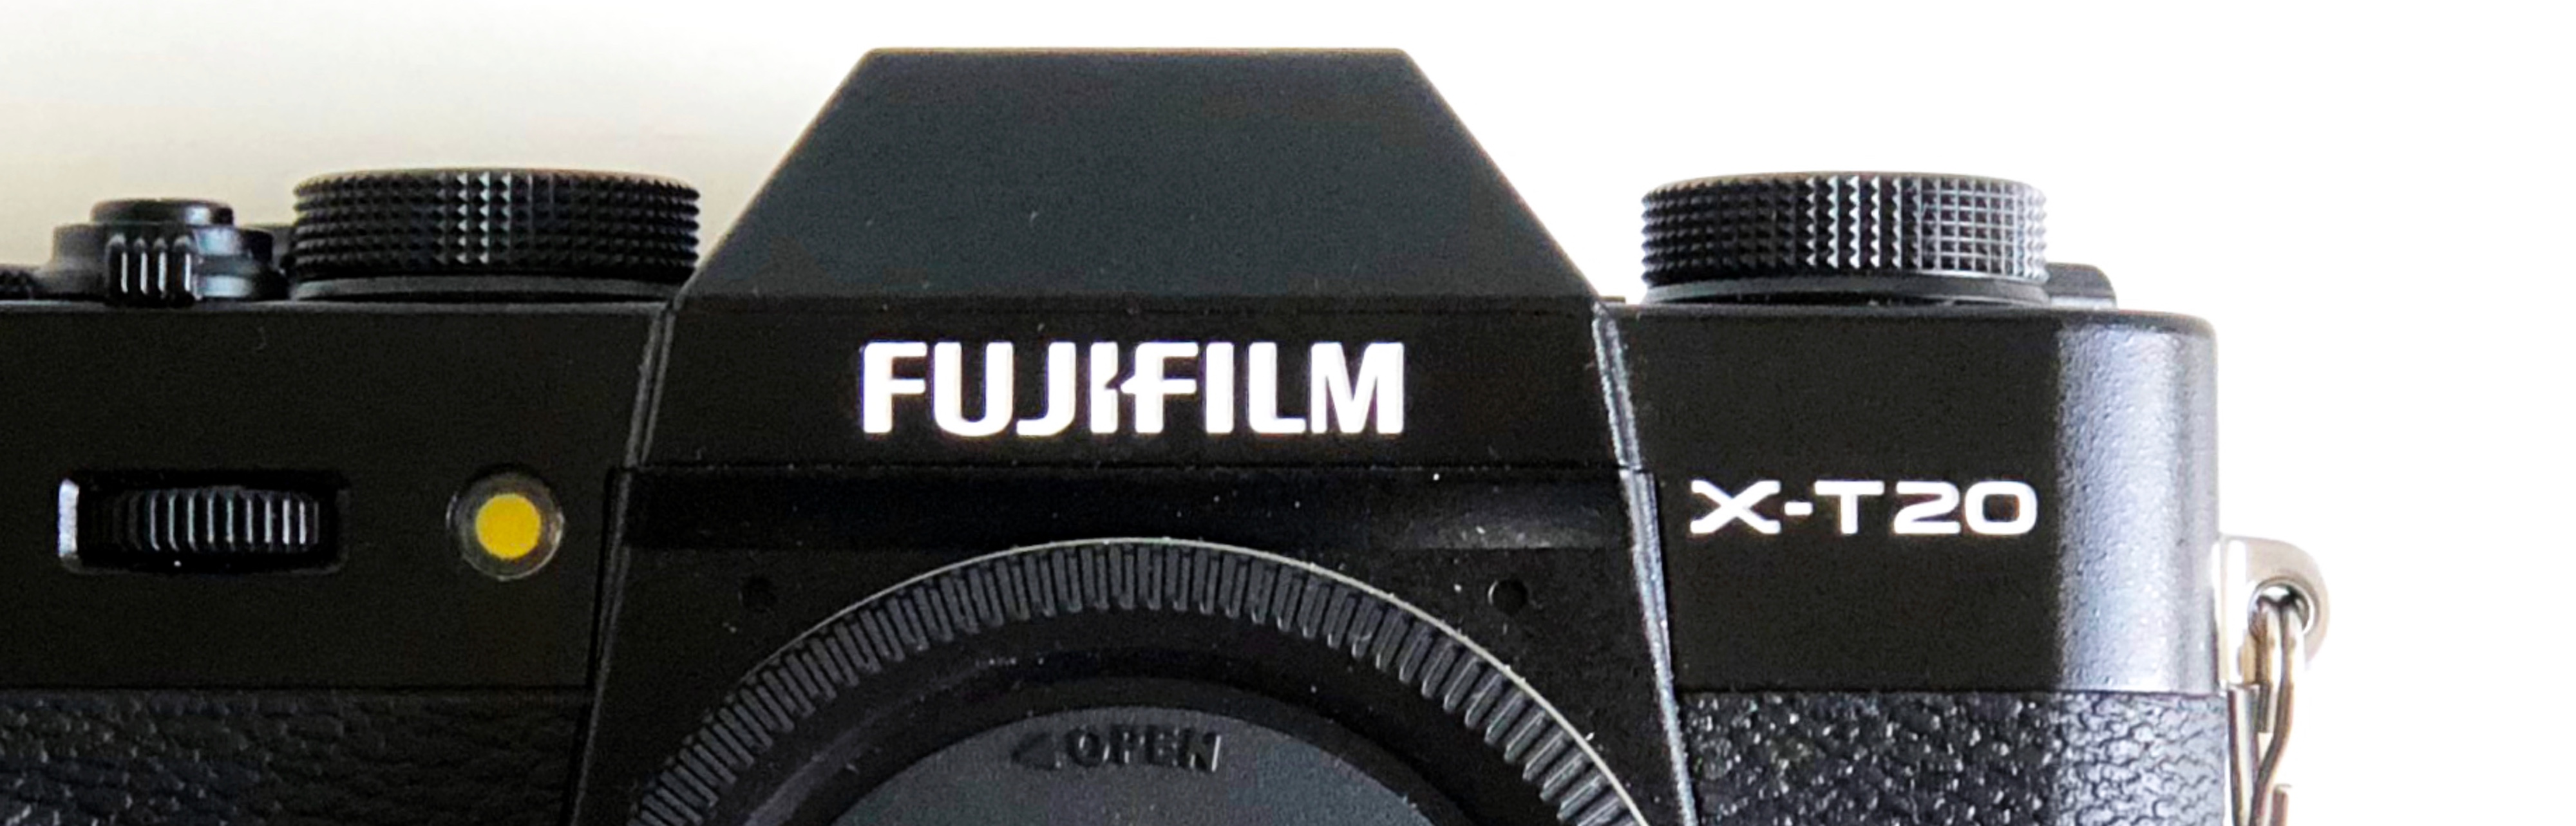 Fuji X-T20 Astrophotography Review